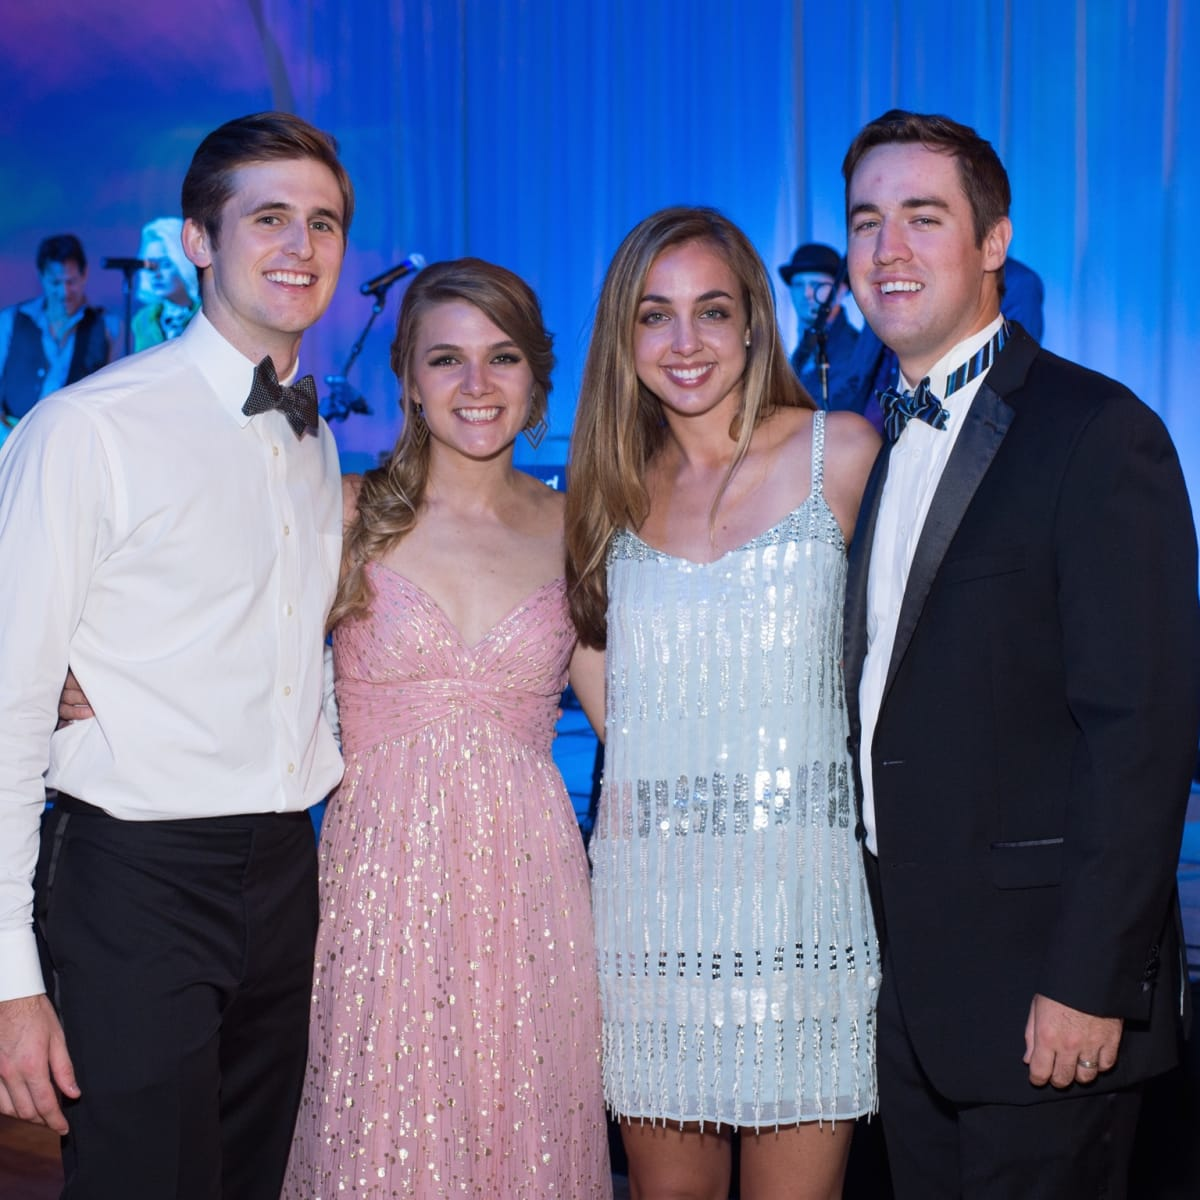 Garrett and Kristi Nondorf, Taylor and Granger McCollough at Covenant House Gala 2017